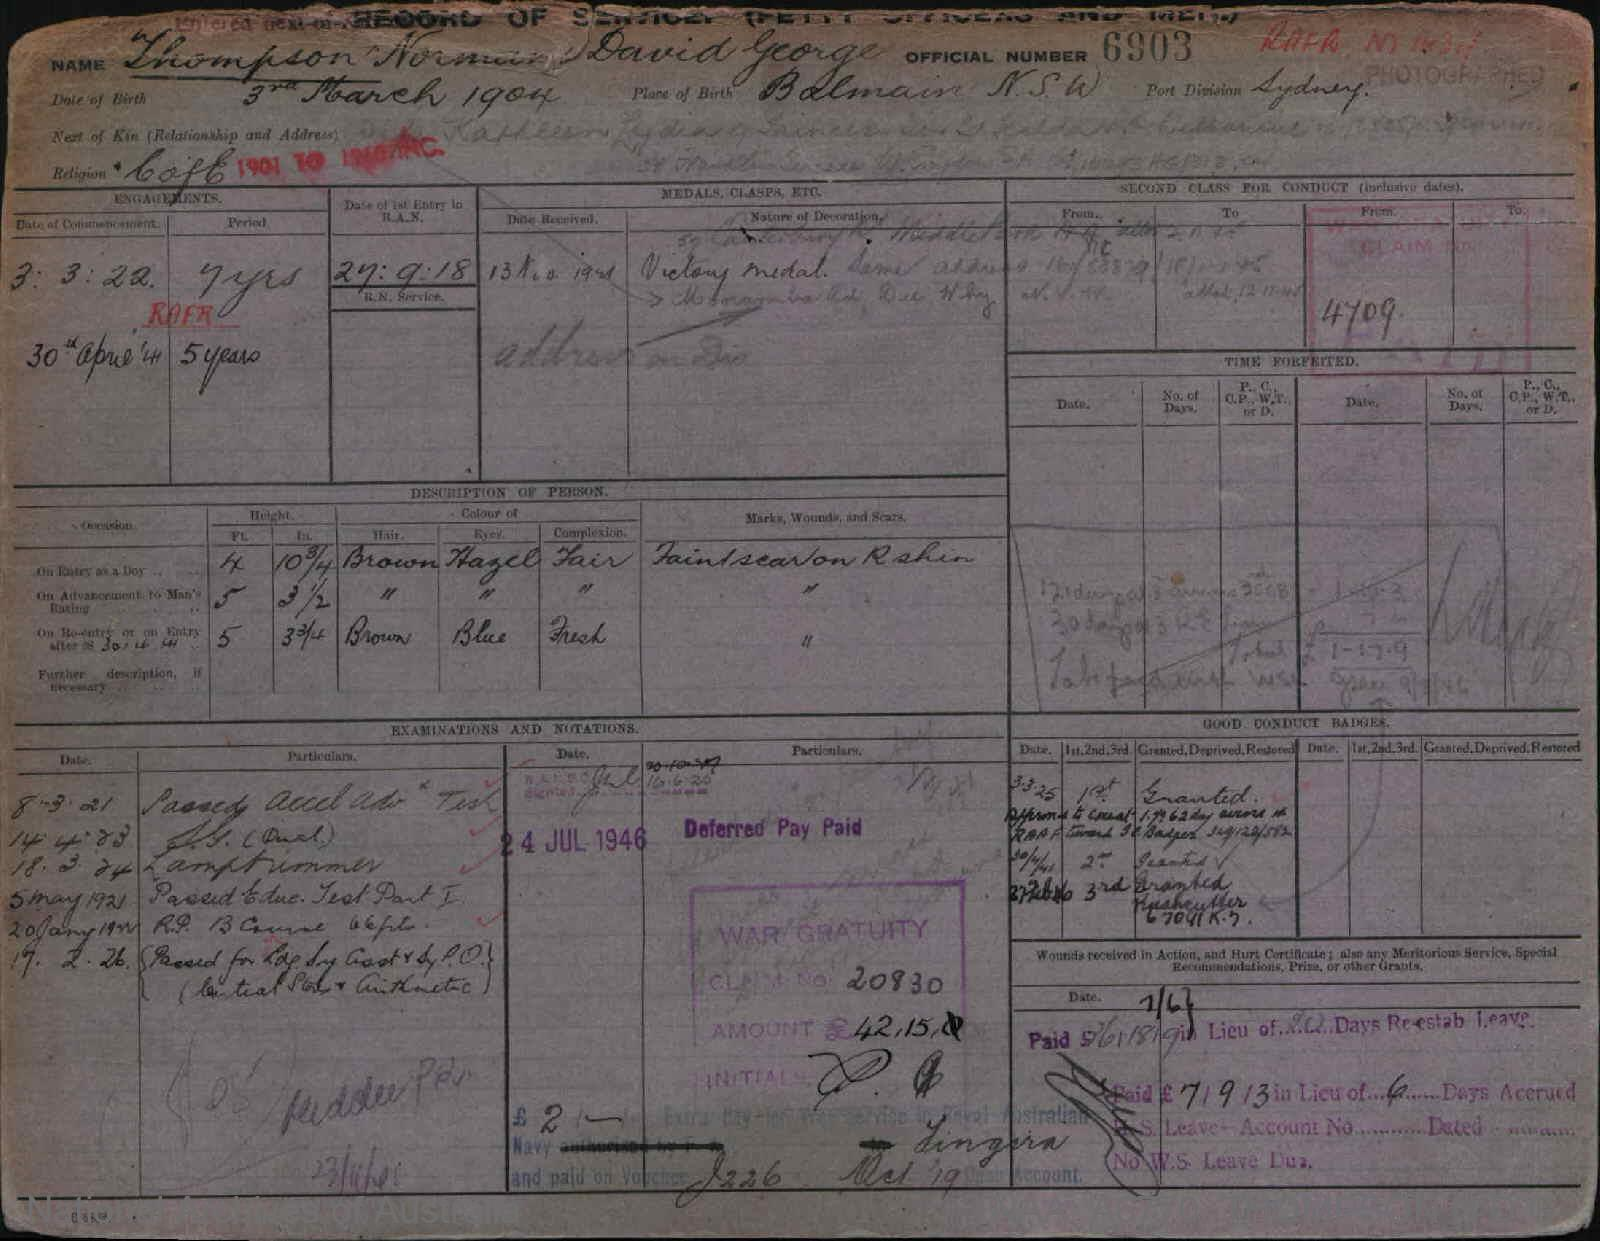 THOMPSON NORMAN DAVID GEORGE : Service Number - 6903 : Date of birth - 03 Mar 1904 : Place of birth - BALMAIN NSW : Place of enlistment - SYDNEY : Next of Kin - KATHLEEN